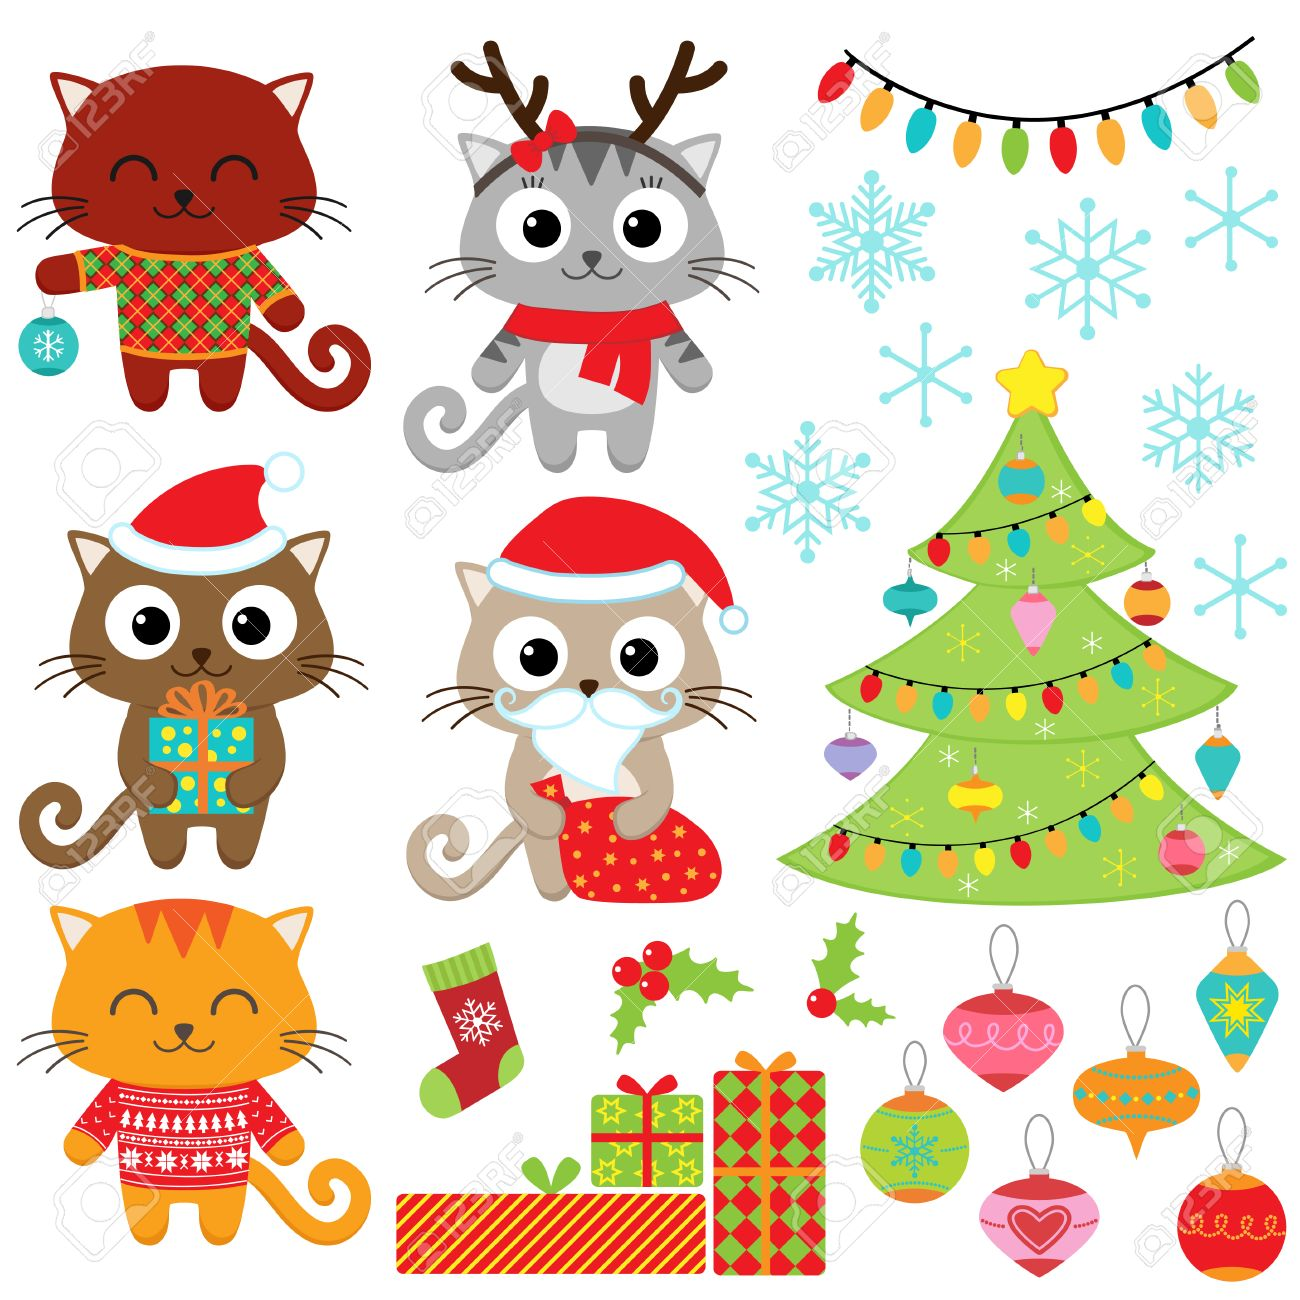 Christmas vector set of cats in costumes, gifts, tree, ornaments and snowflakes - 47948911